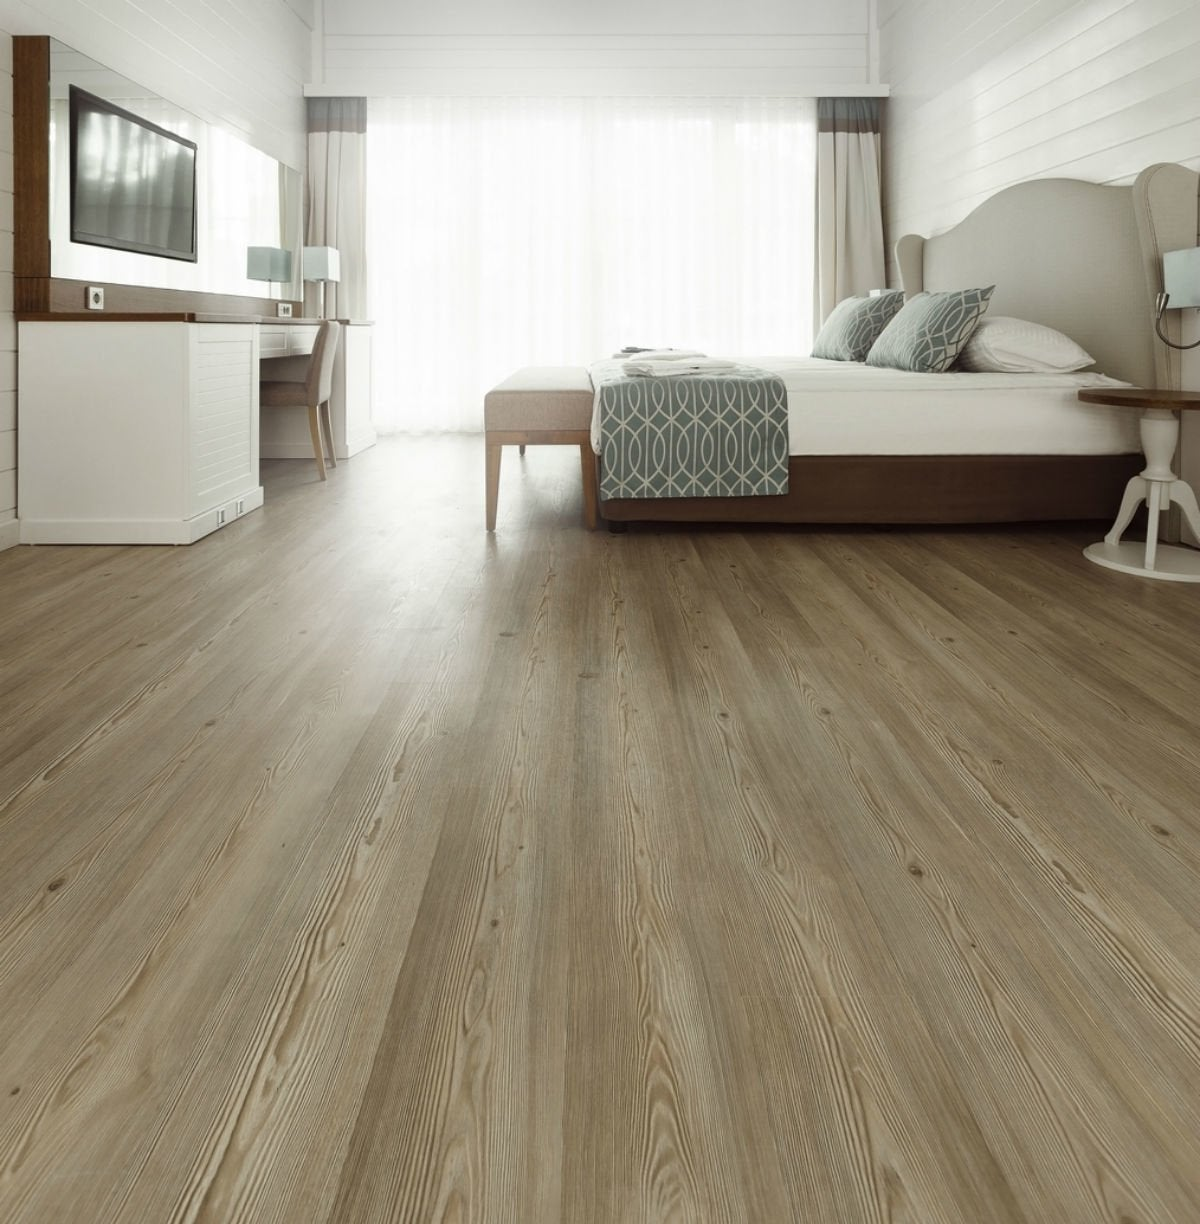 The 7 Pros and Cons of Laminate Flooring  Bob Vila